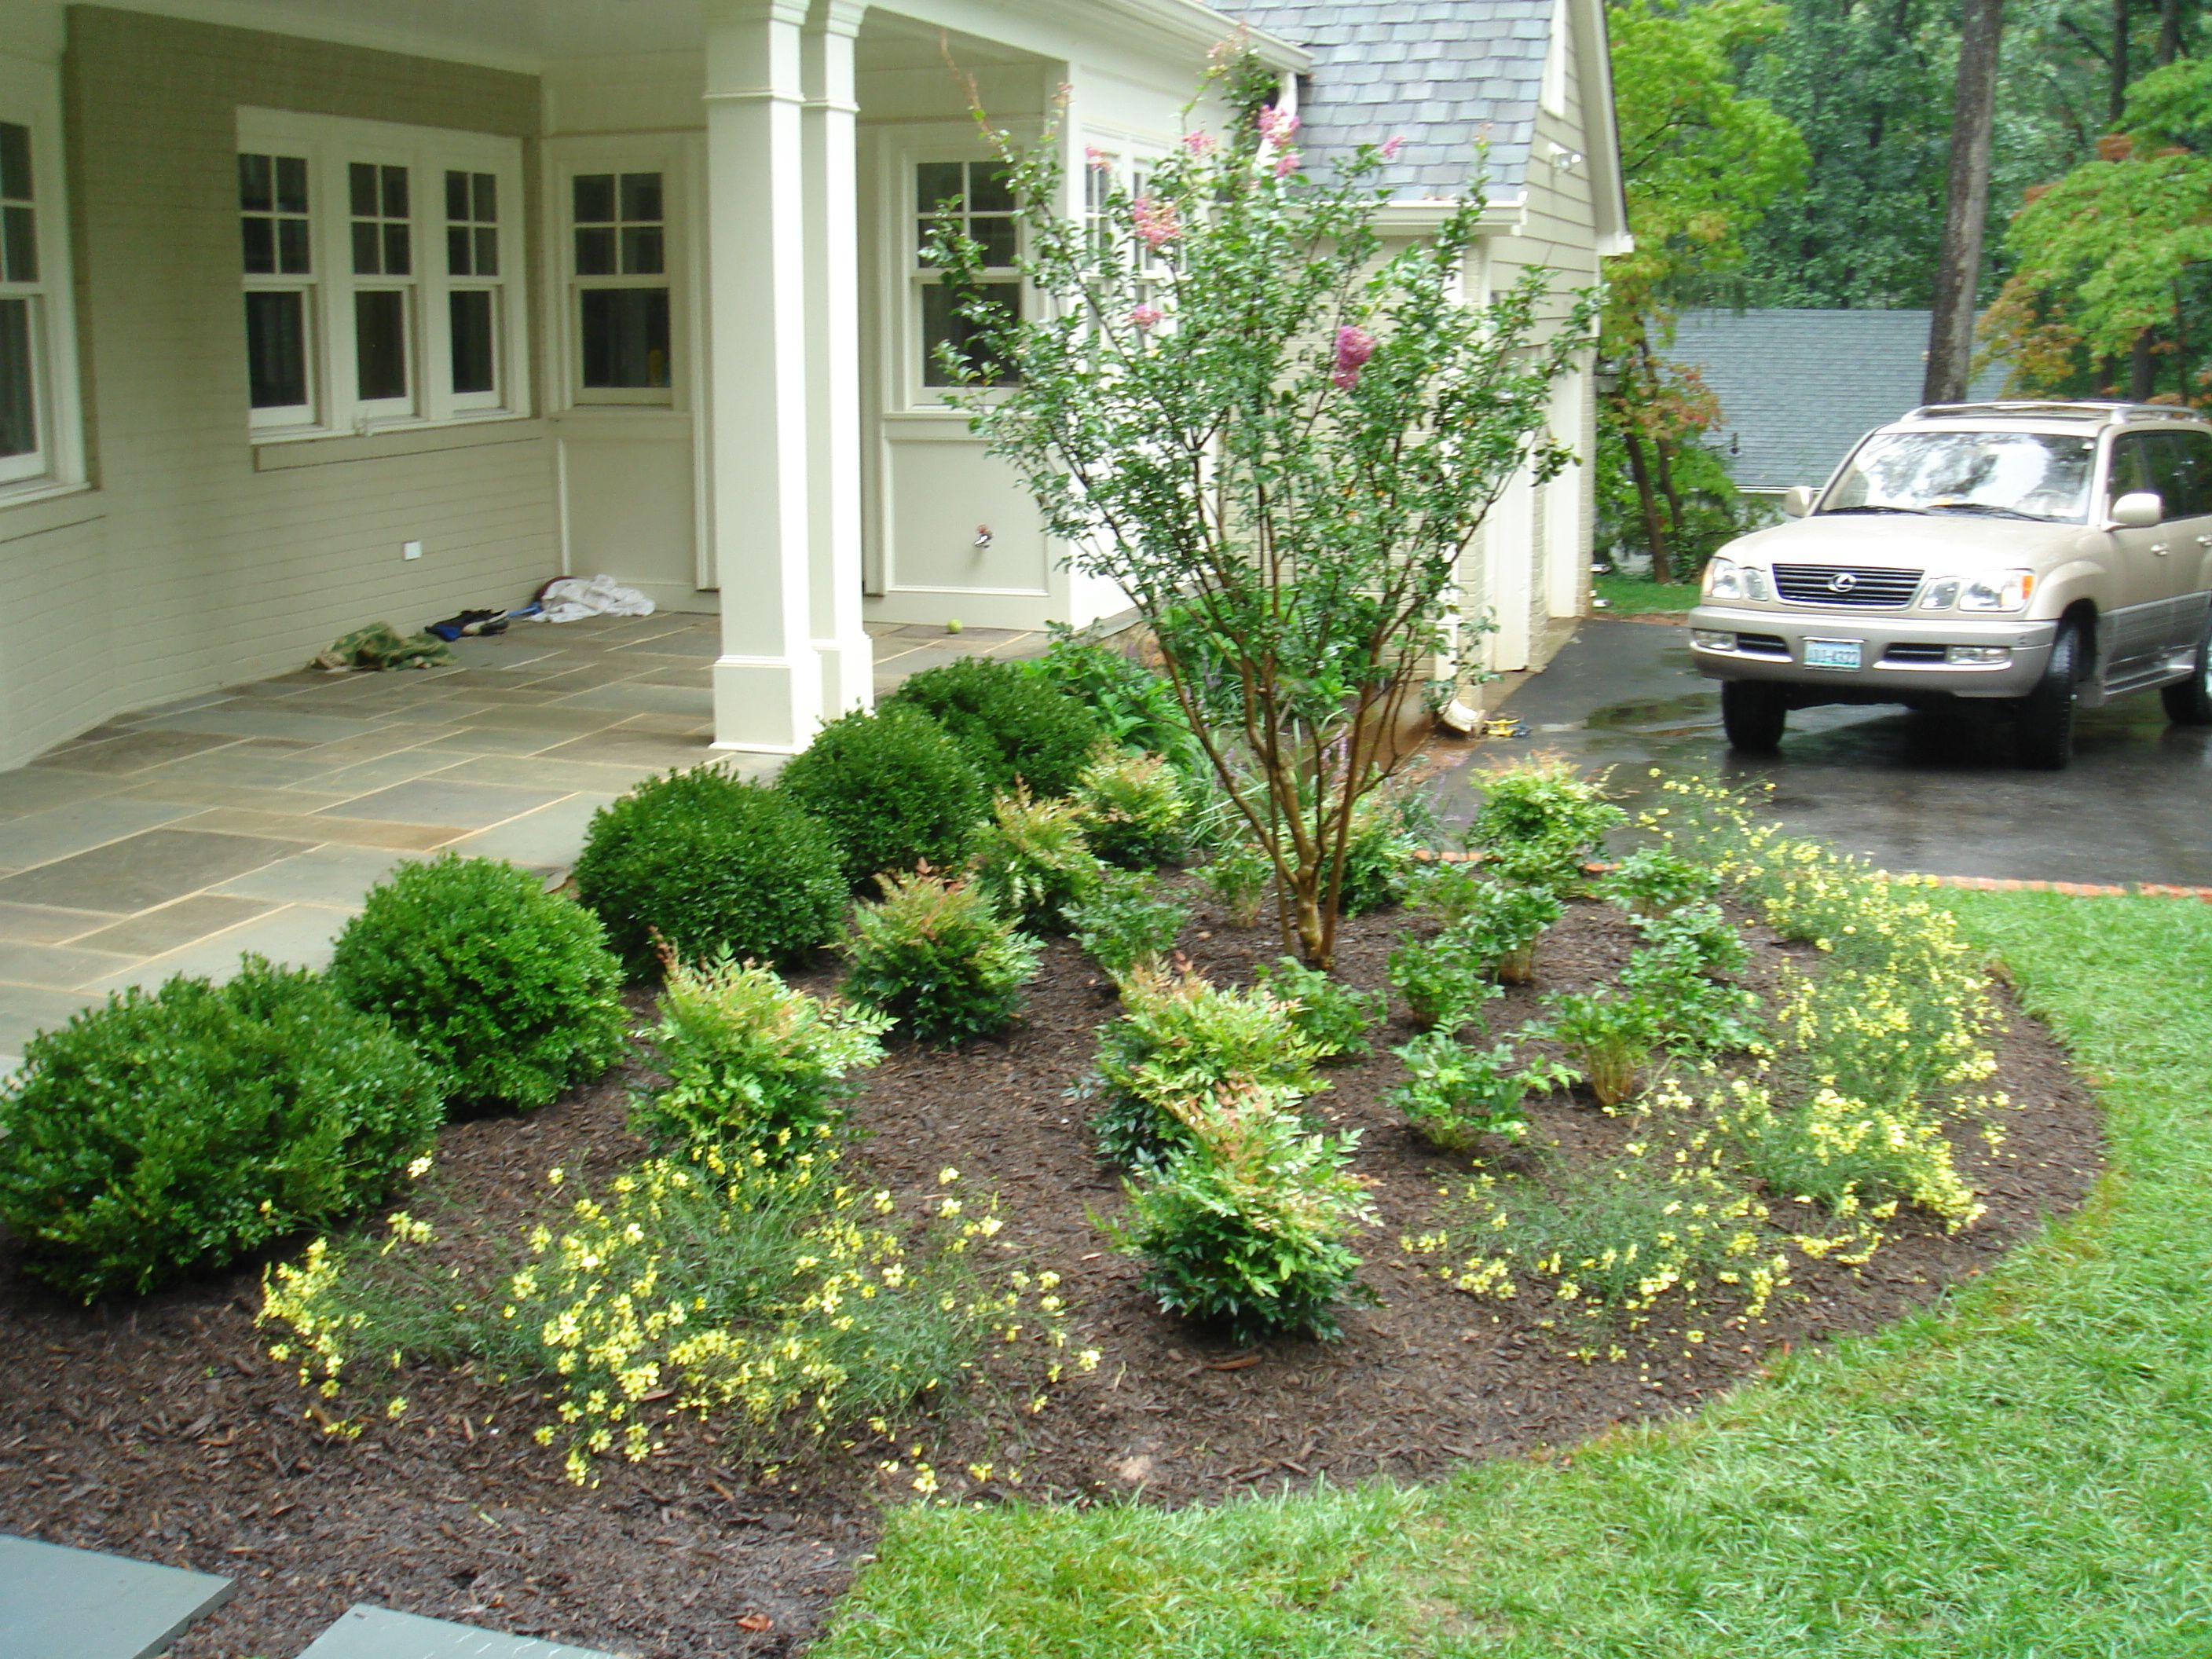 Basic Landscaping Ideas For Front Yard Part - 32: Simple Front Yard Landscaping Ideas With Trees On A Budget Love The Little  Yellow Flowers